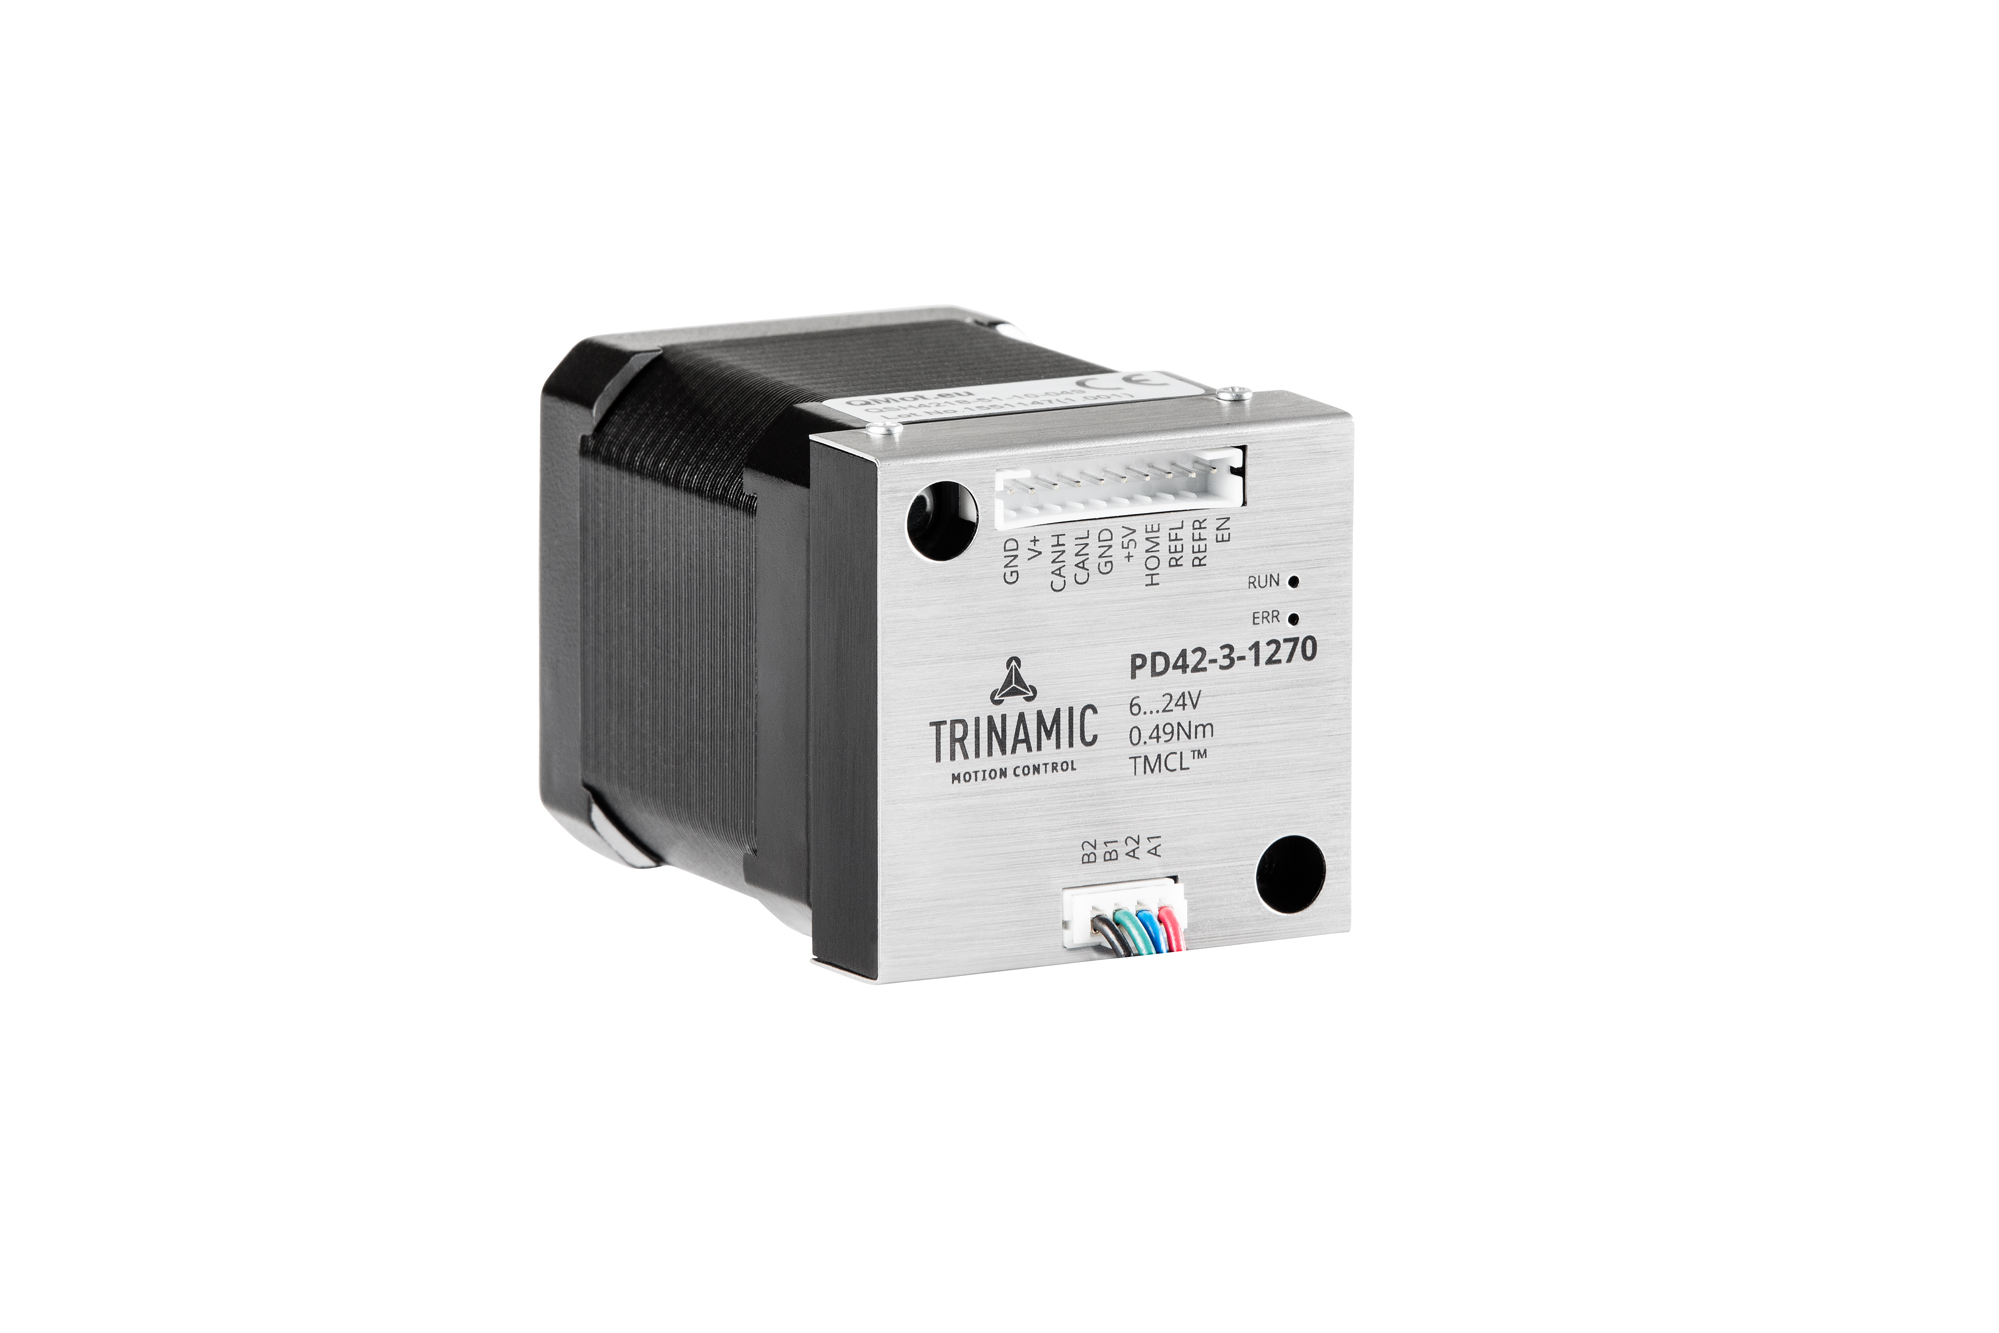 TRINAMIC Motion Control - PANdrive PD42-3-1270-TMCL